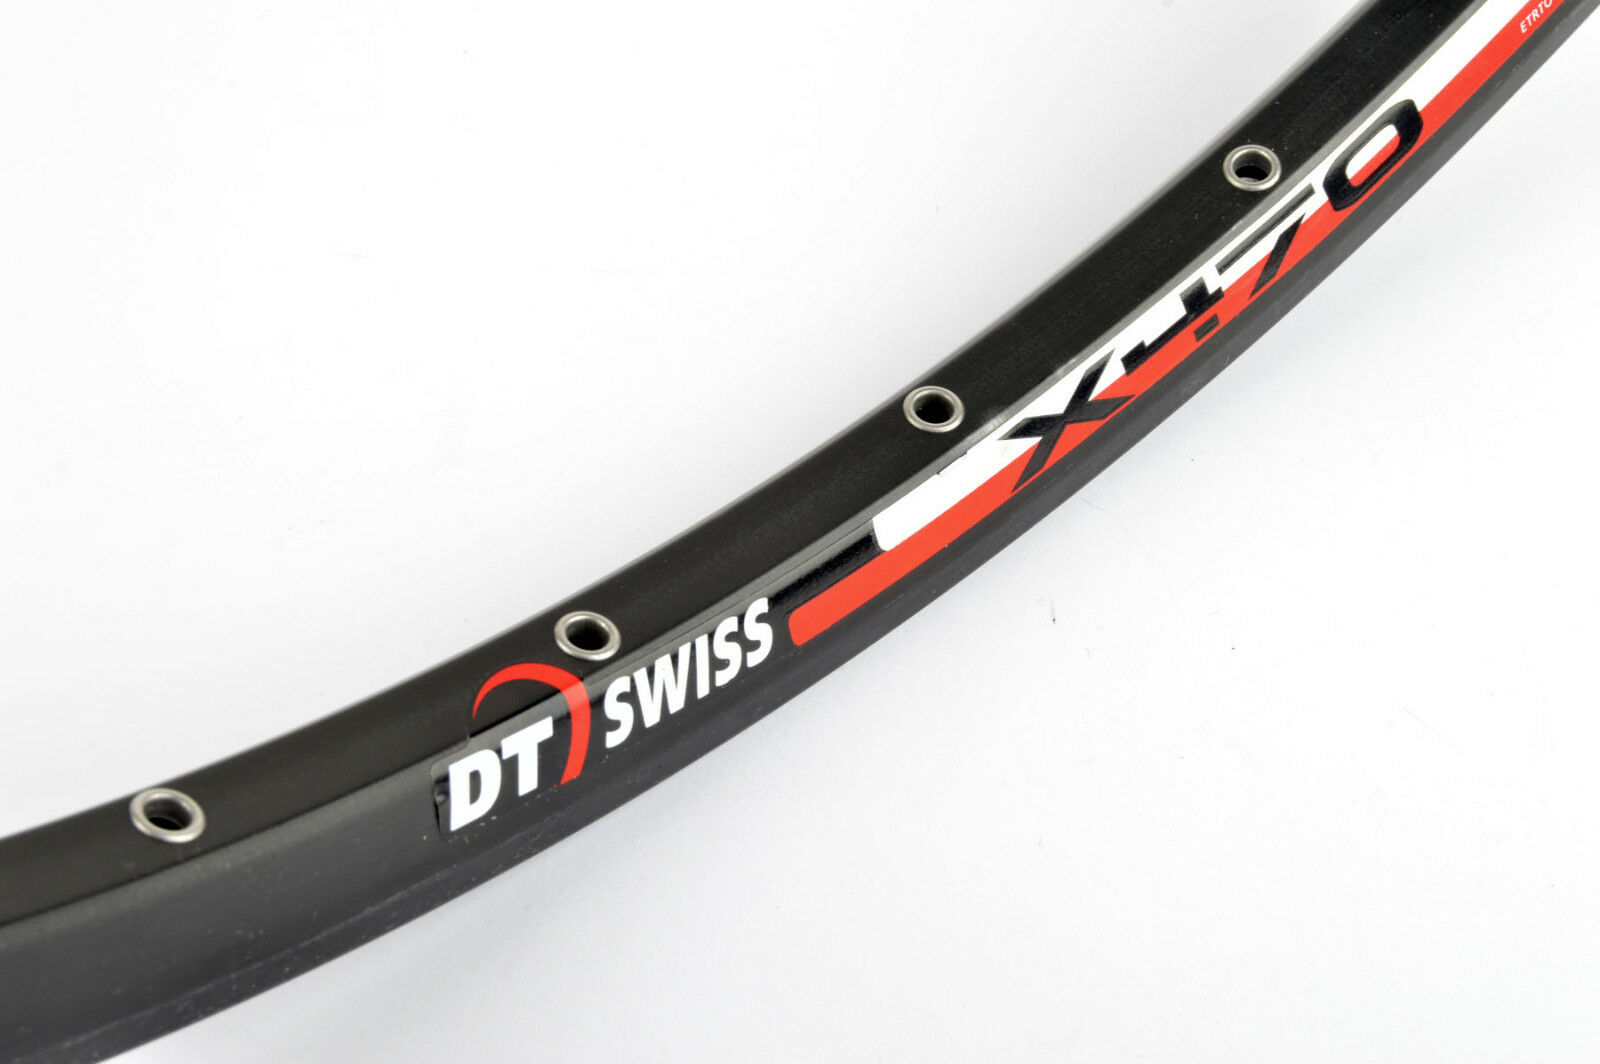 NEW DT Swiss X470 Clincher single  Rim 700c 622mm with 32 holes  hottest new styles